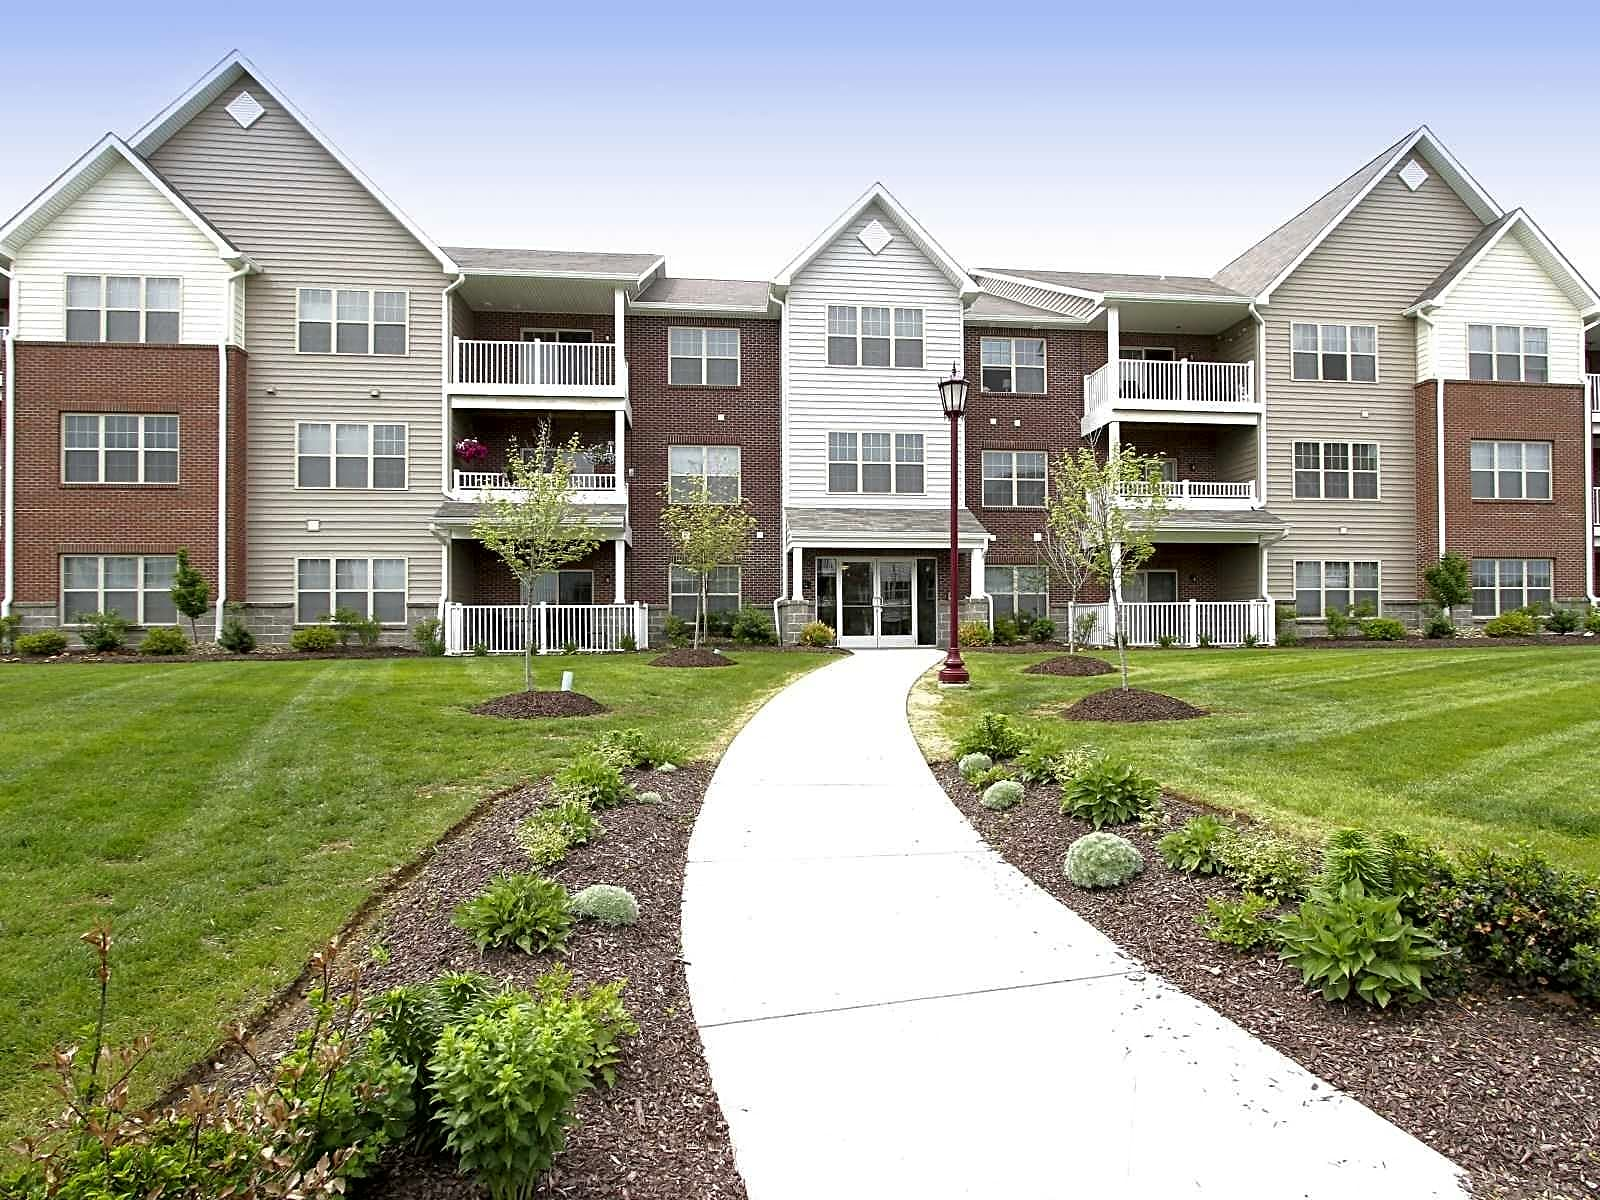 This is Actually the Brand New Picture Of Patio Homes for Sale Cranberry Twp Pa